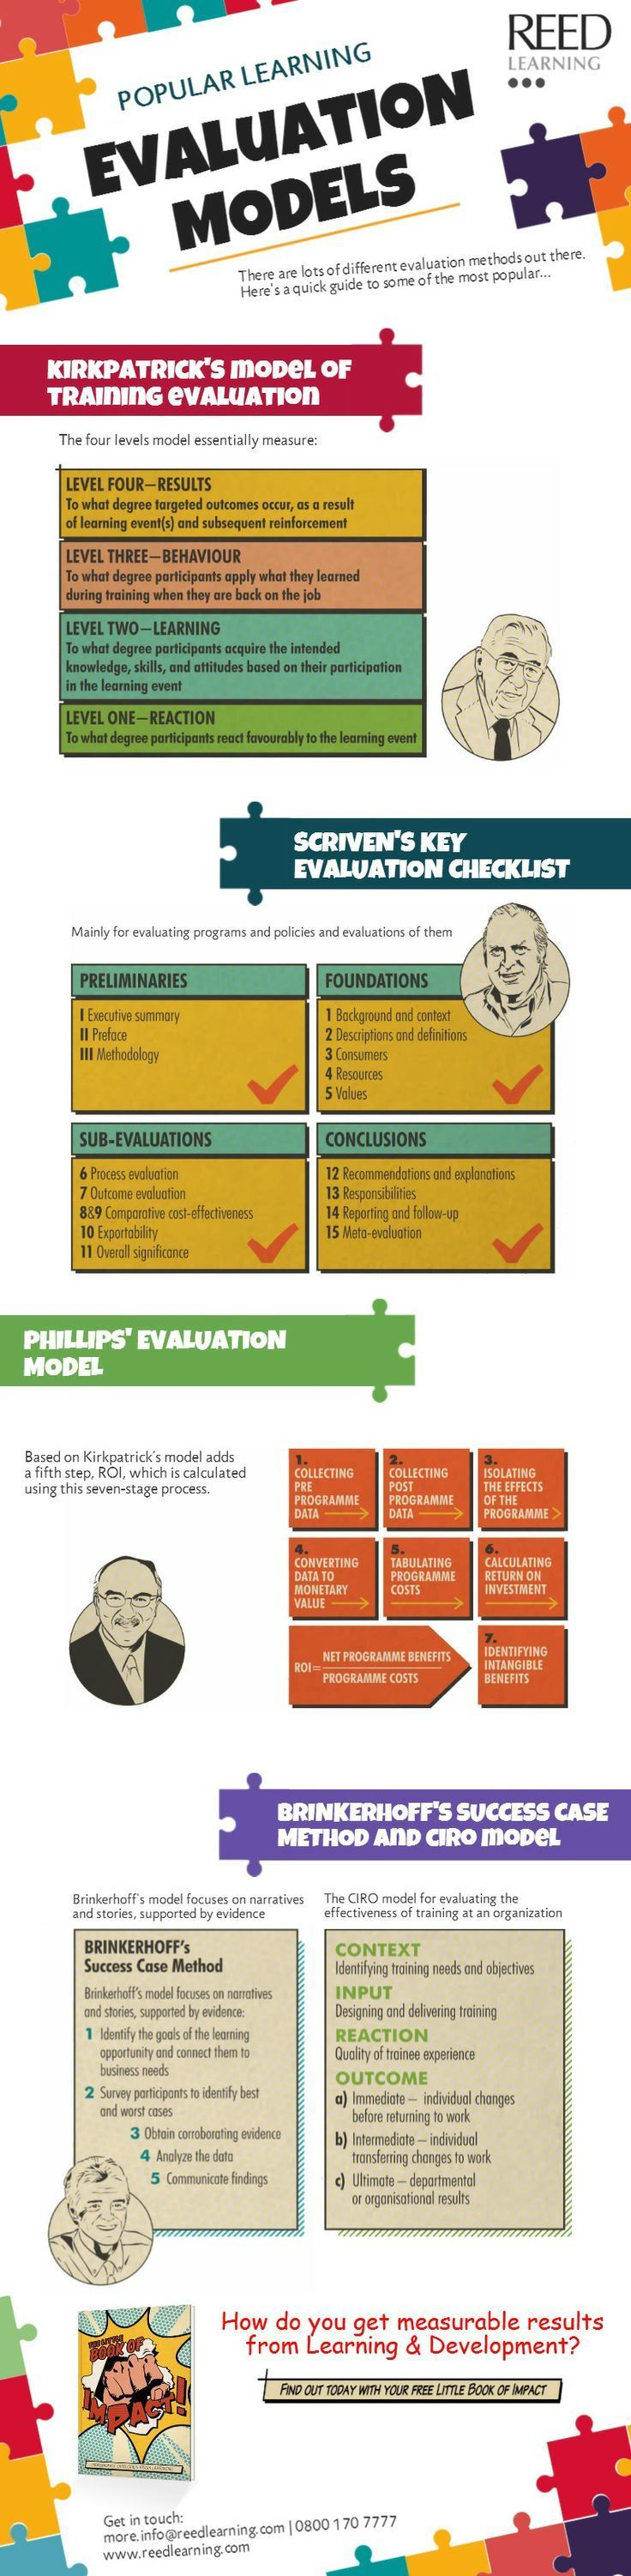 Popular Learning Evaluation Models Infographic - http://elearninginfographics.com/popular-learning-evaluation-models-infographic/